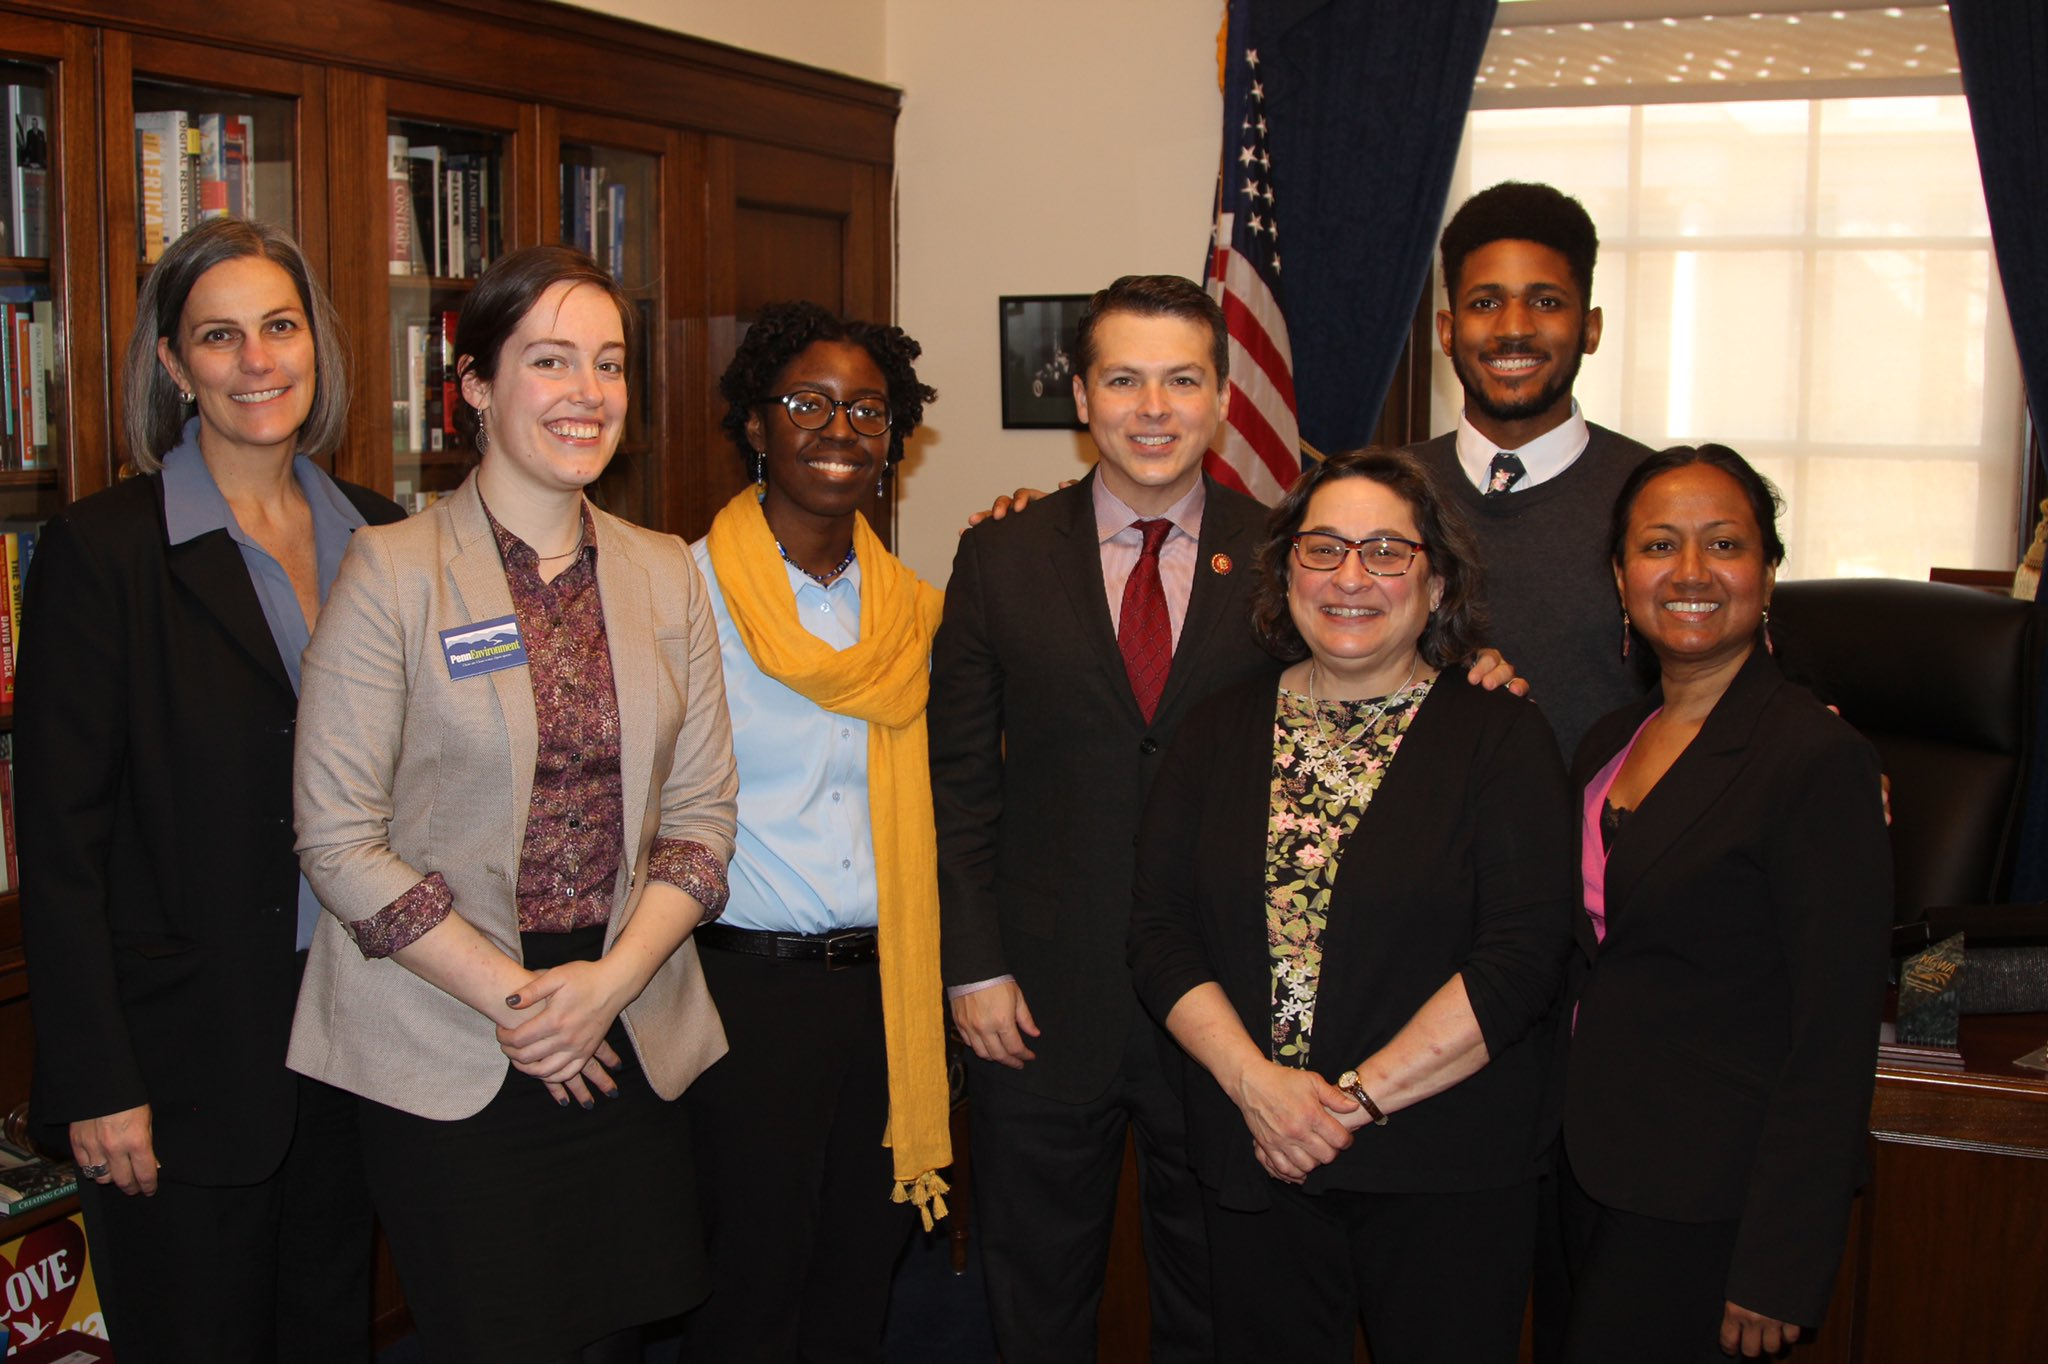 Representatives from Partnership for the Delaware Estuary, PennEnvironment, National Audubon, and Tookany/Tacony-Frankford Watershed Partnership met with Congressman Boyle during Hill Day.